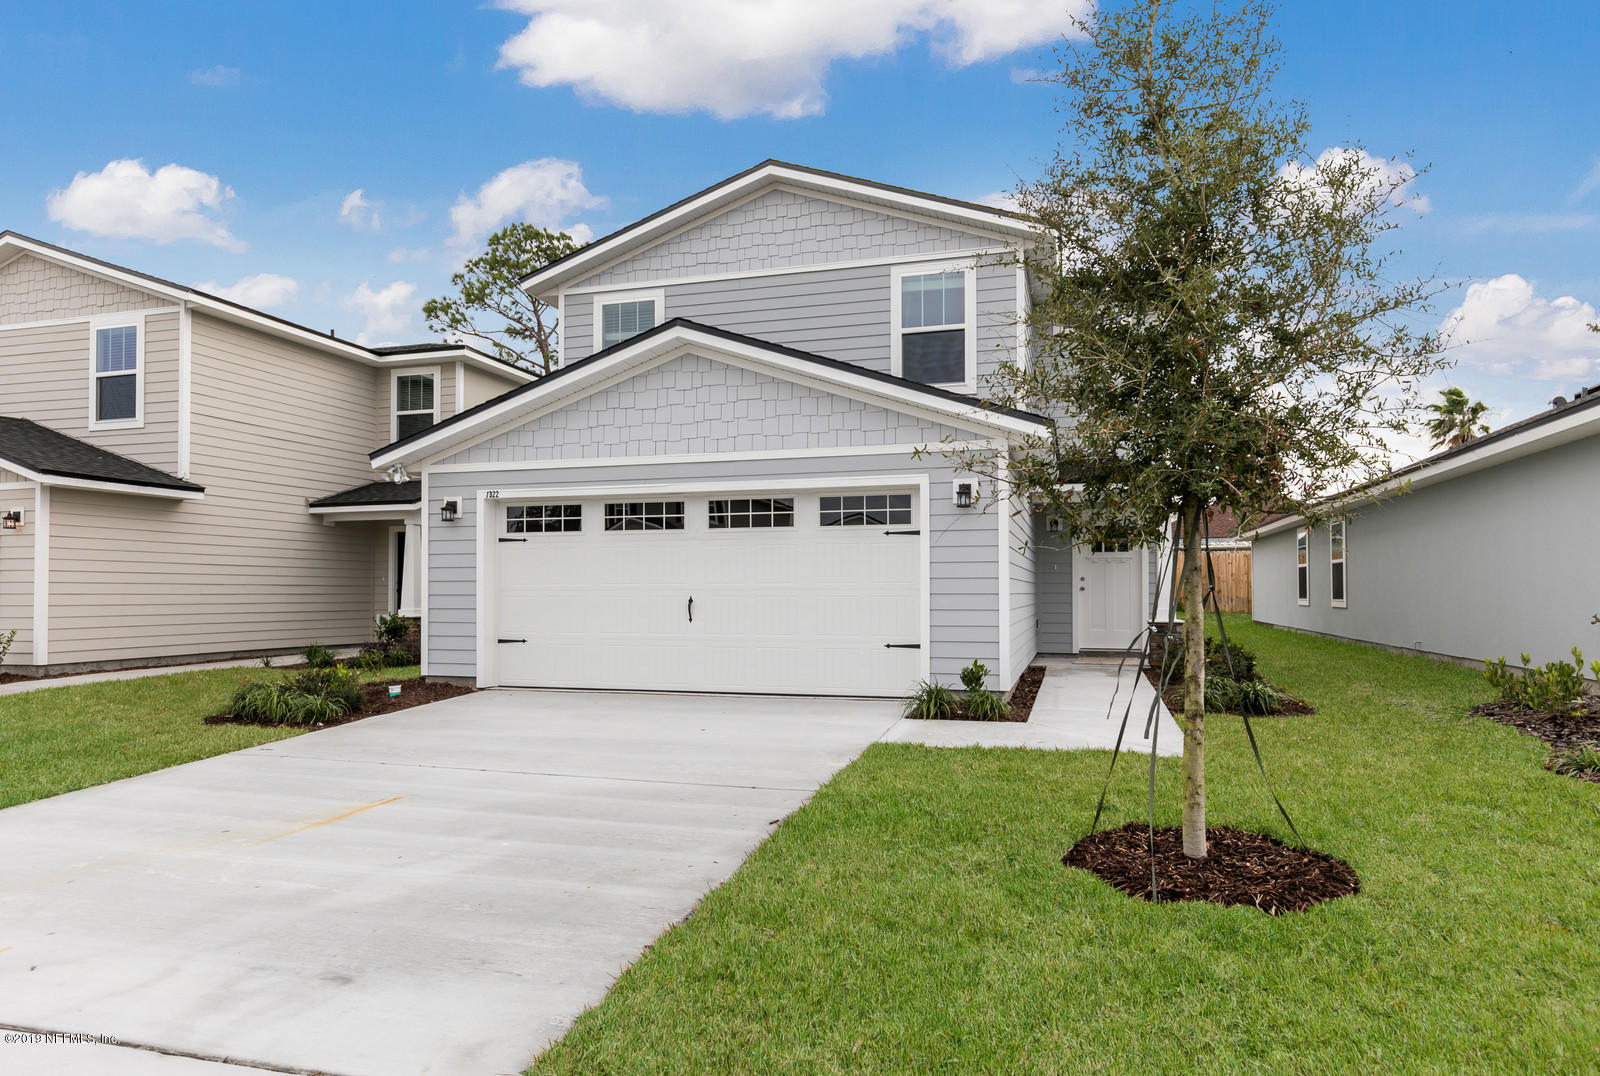 7322 TOWNSEND VILLAGE, JACKSONVILLE, FLORIDA 32277, 4 Bedrooms Bedrooms, ,2 BathroomsBathrooms,Residential - single family,For sale,TOWNSEND VILLAGE,973852